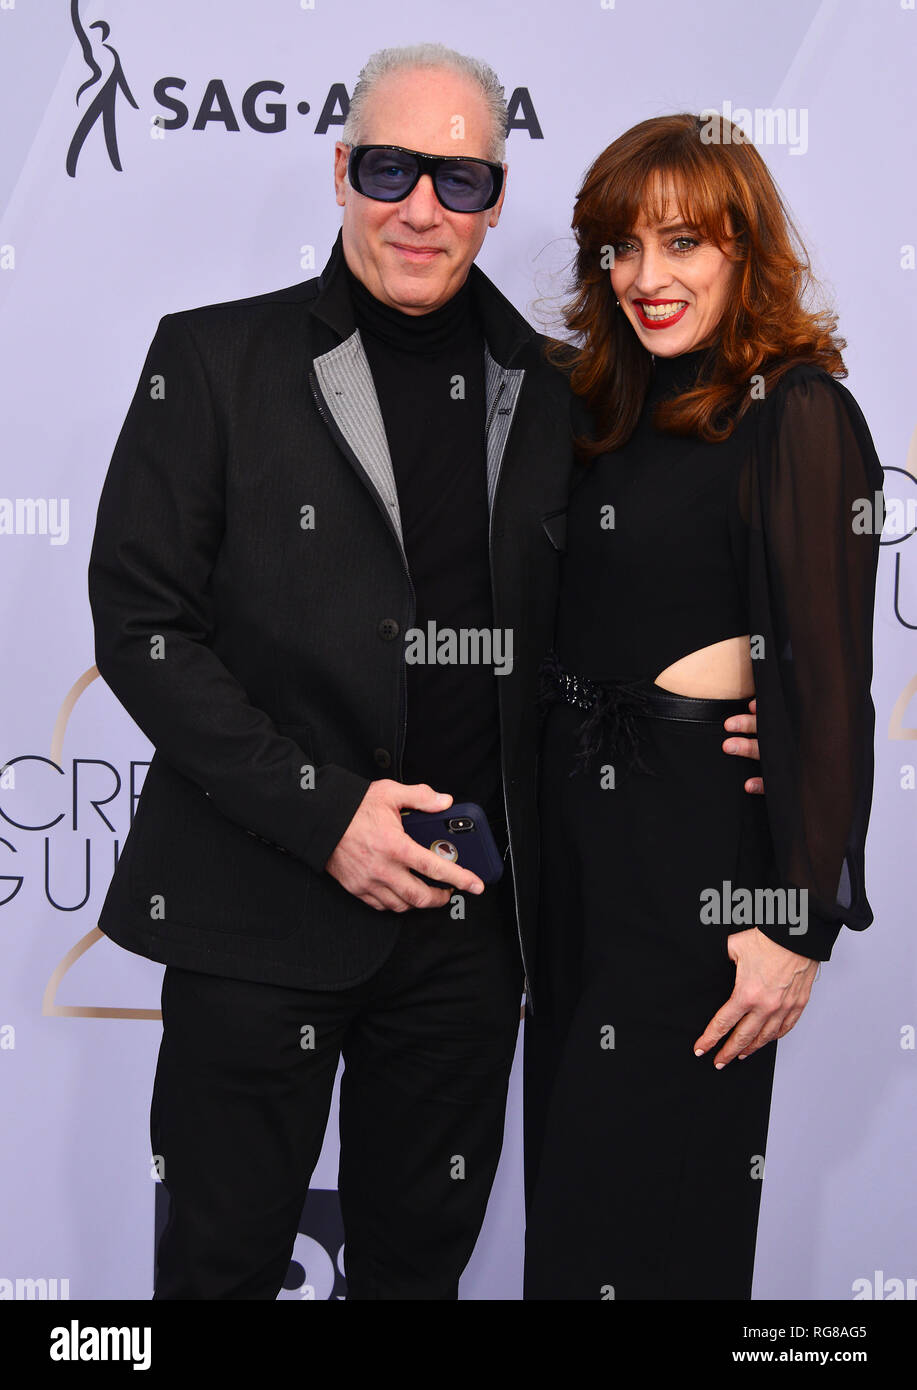 Los Angeles, USA. 27th Jan, 2019. Eleanor Kerrigan, Andrew Dice Clay 301 arriving at the 25th Annual Screen Actors Guild Awards at The Shrine Auditorium on January 27, 2019 in Los Angeles, California Credit: Tsuni/USA/Alamy Live News - Stock Image